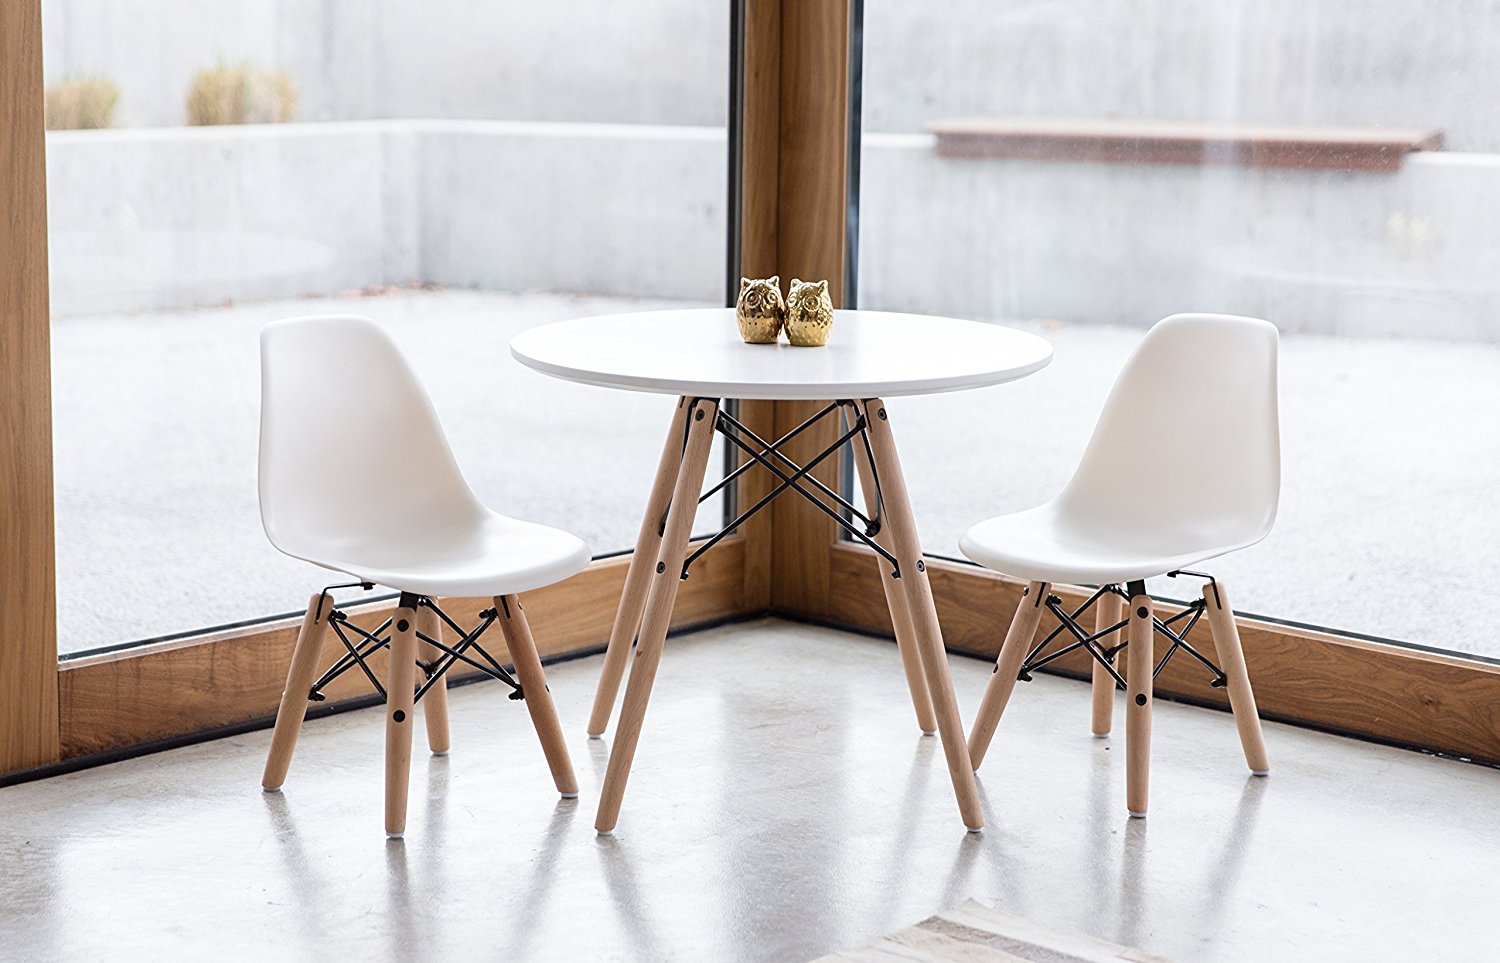 UrbanMod Kids Mid Century Style Modern White Table Set, Round Table with Two Easy-Clean Chairs